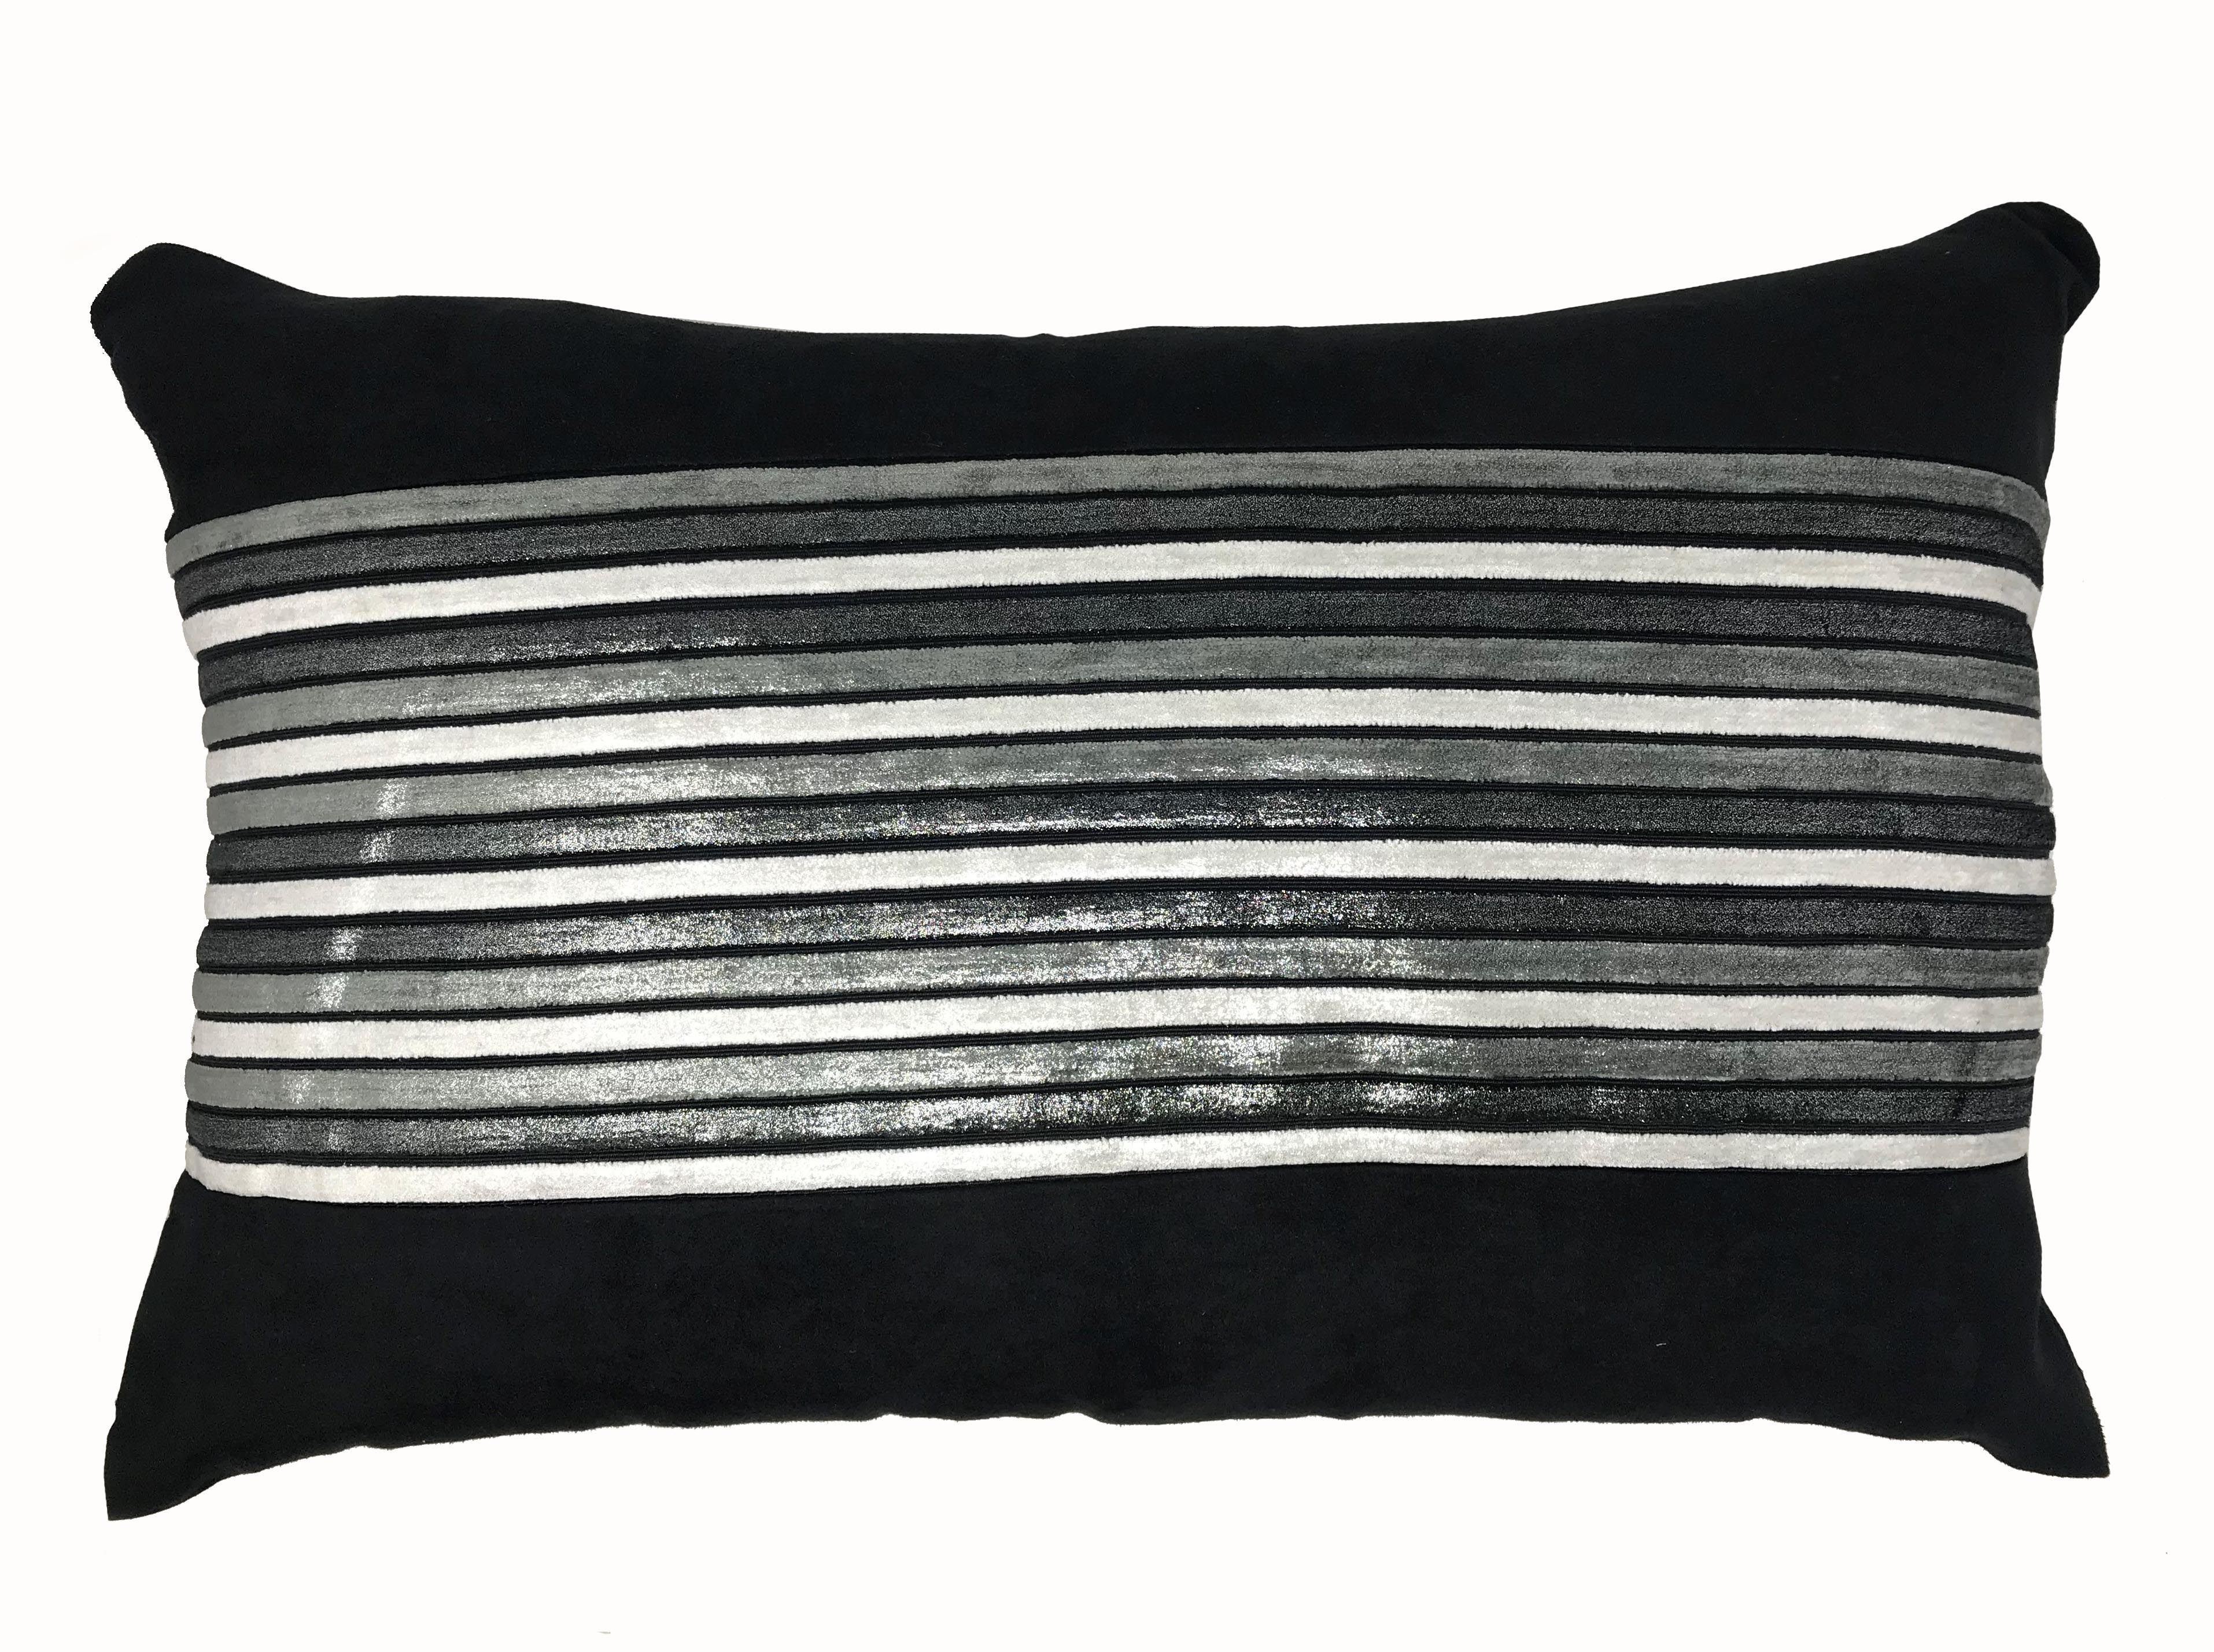 Shangai Black Silver Stripe 60cm x 40cm Boudoir Cushion Cover Only